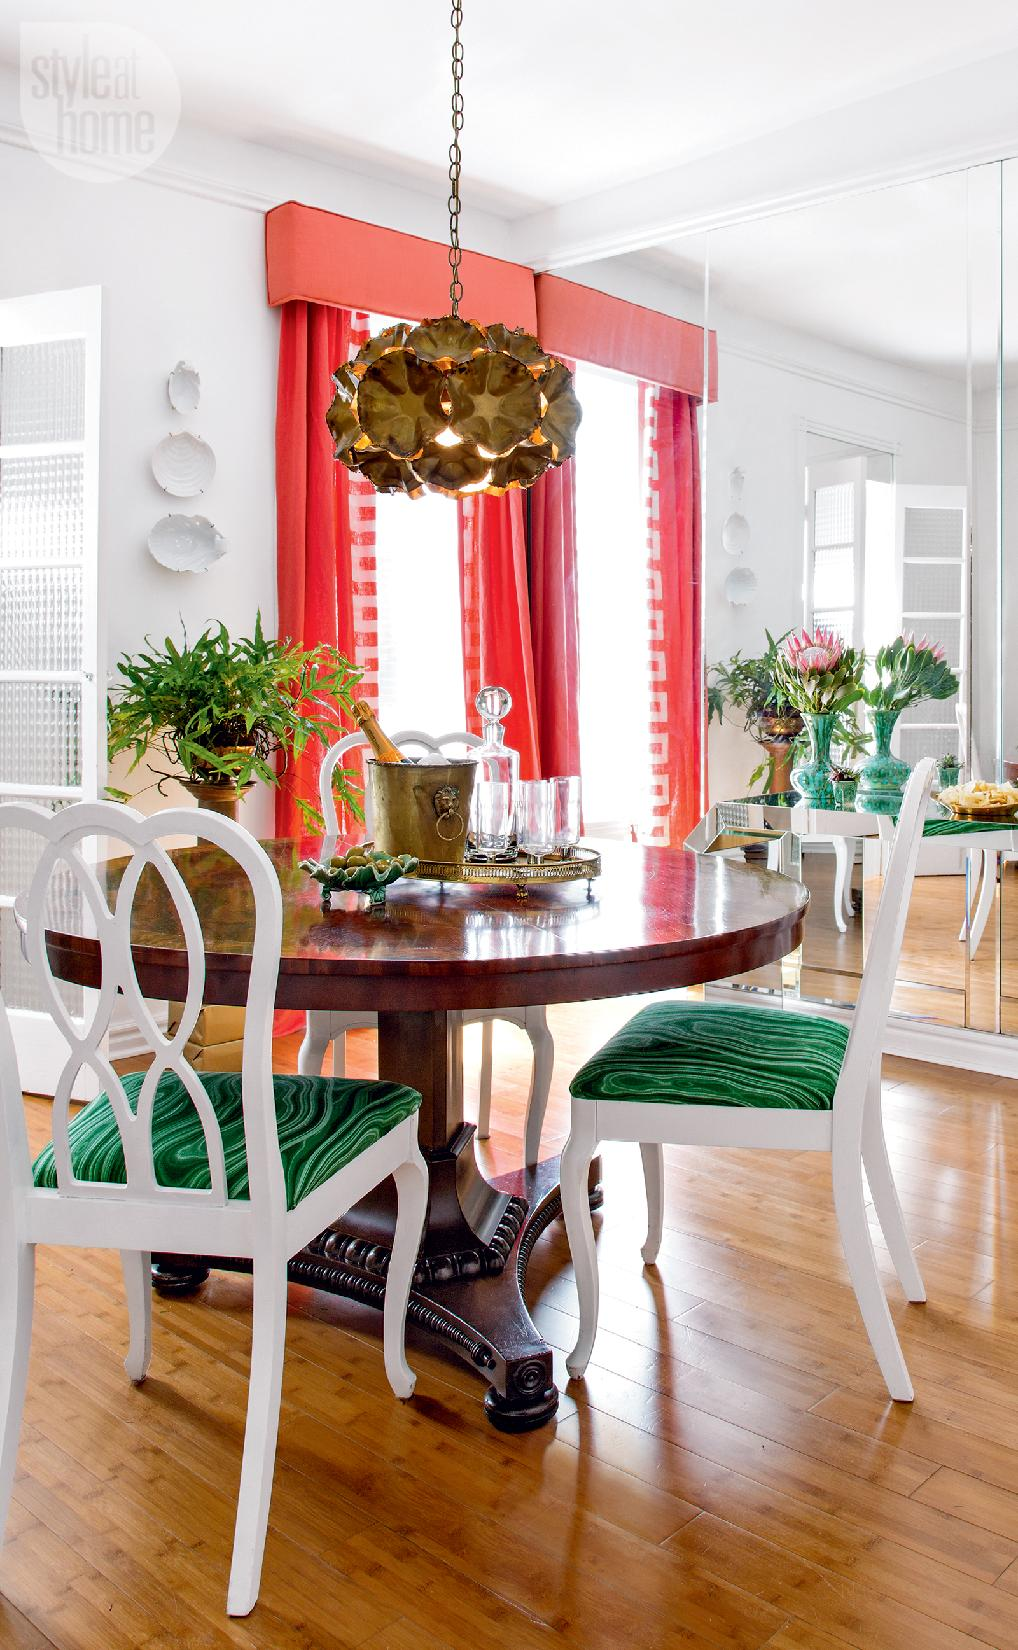 Style At Home Bright and bohemian holiday 6